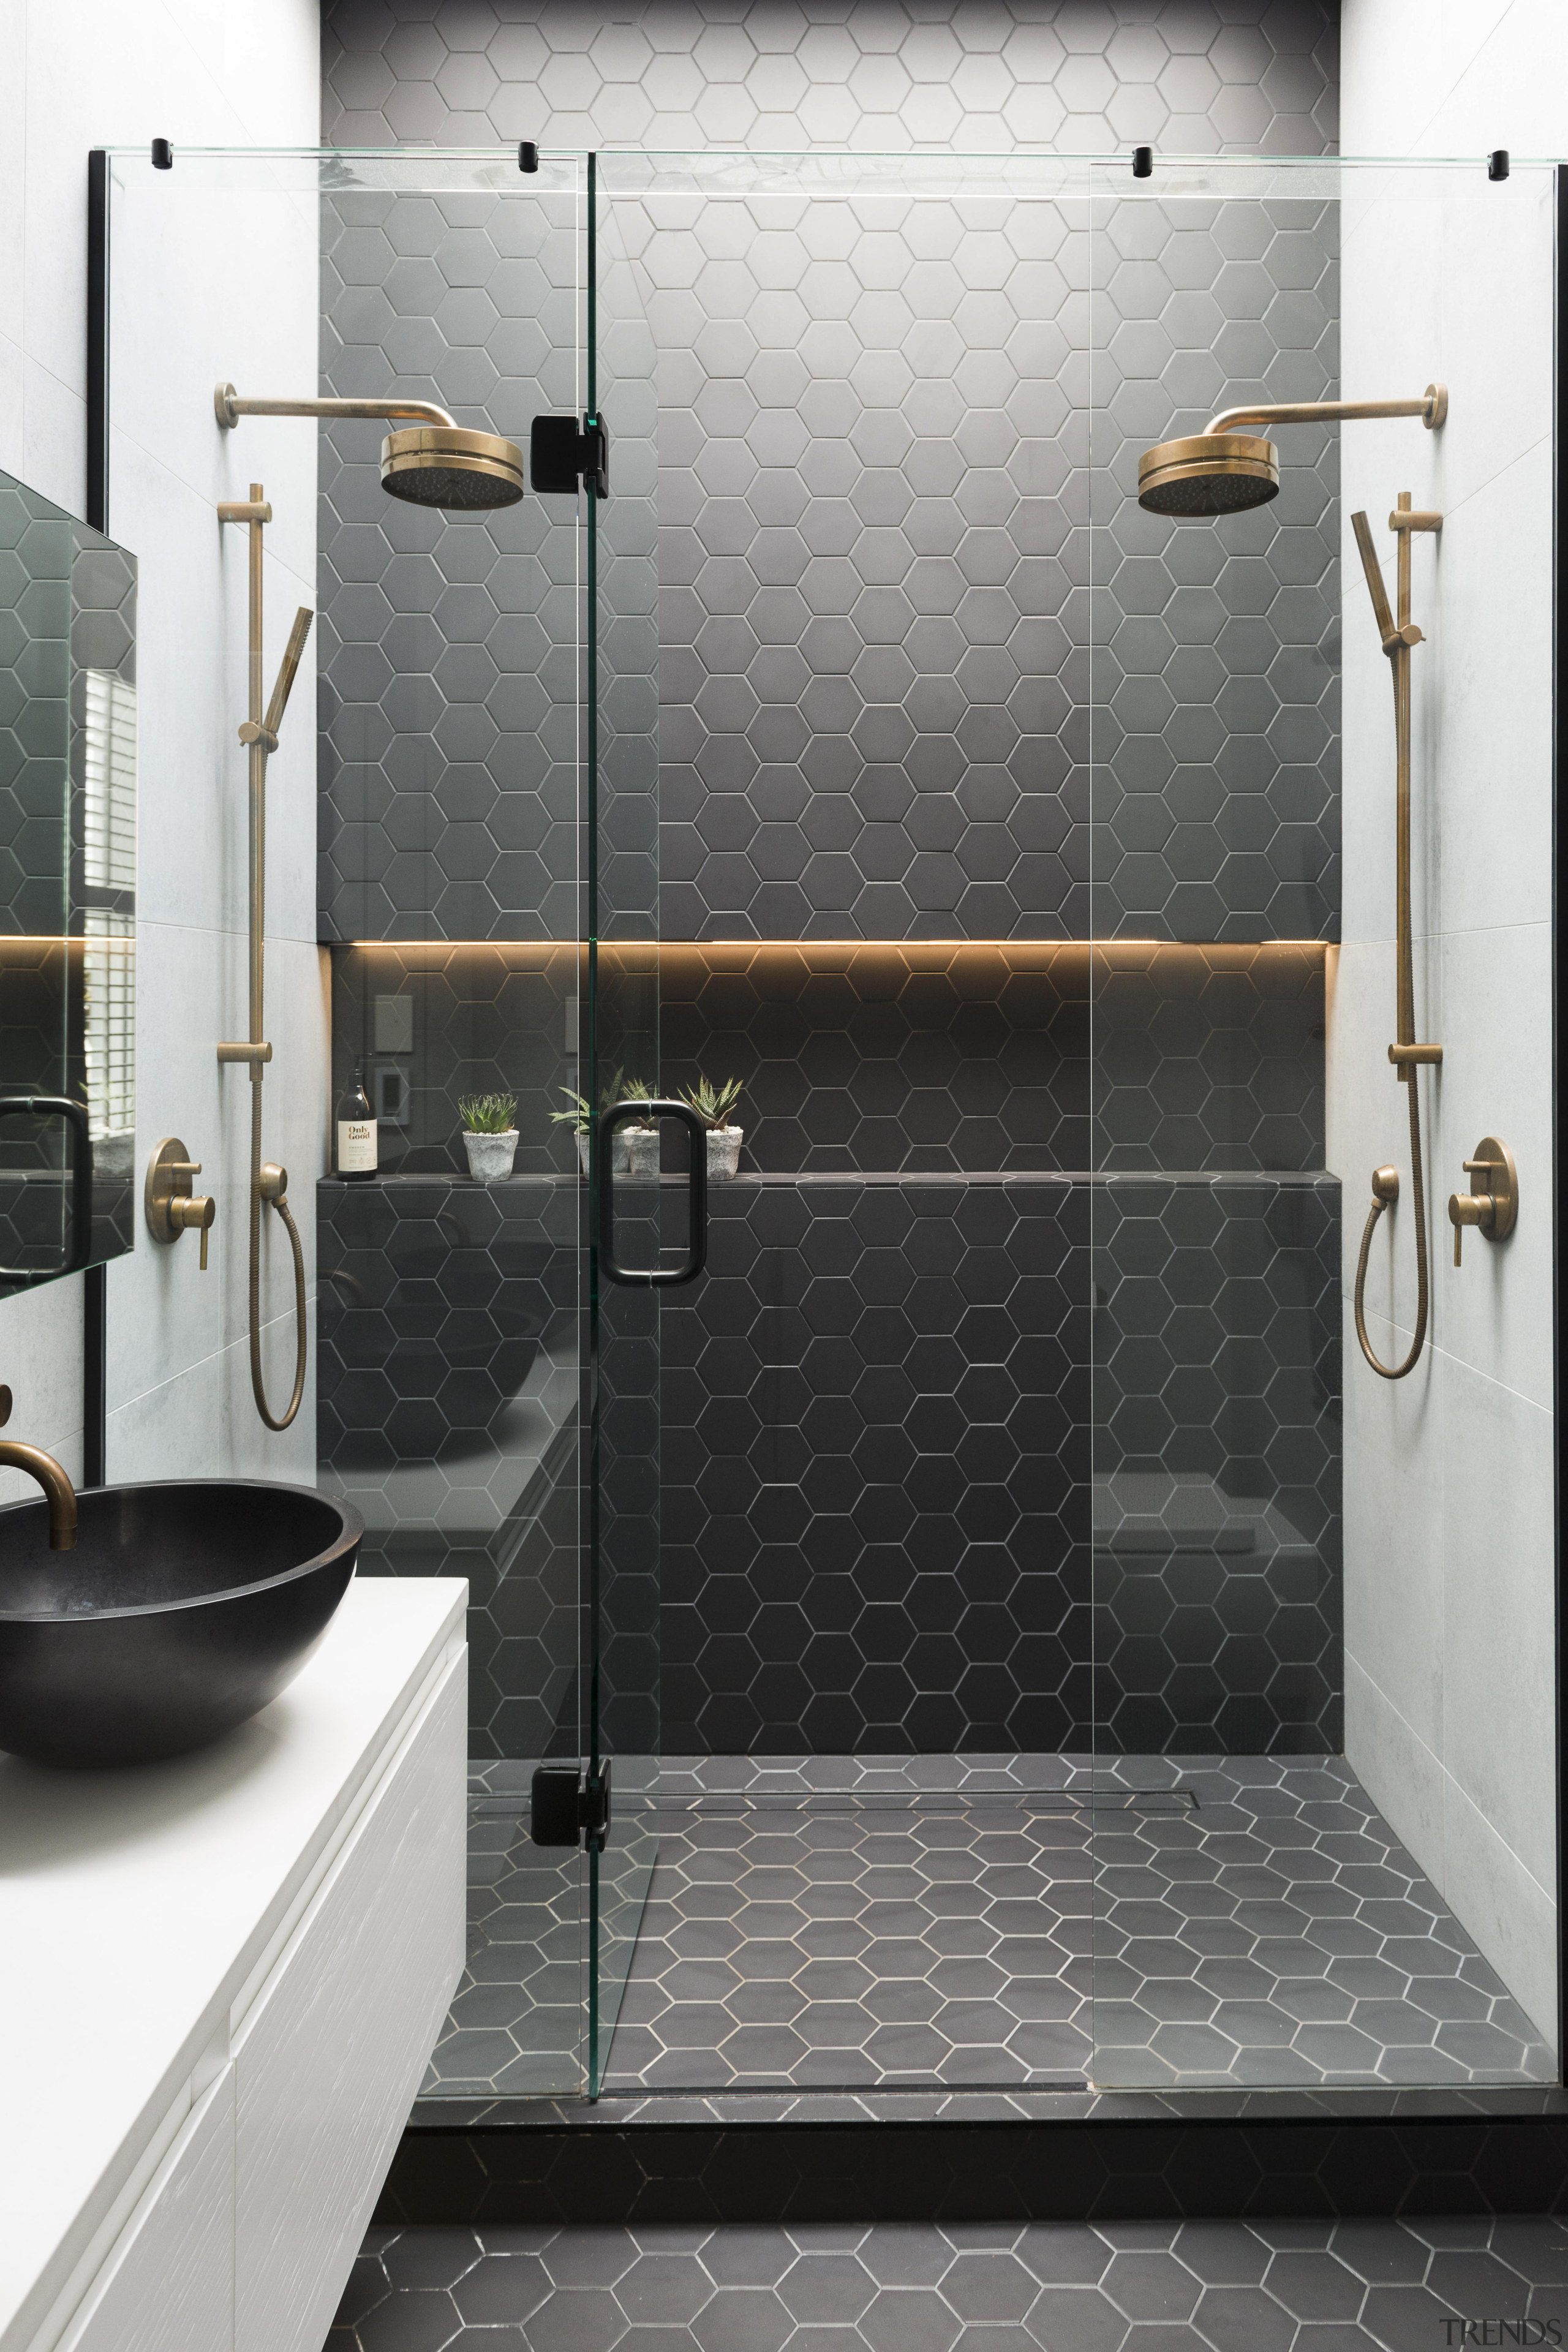 Black meets white with touches of warm brass bathroom, floor, flooring, plumbing fixture, room, shower, tile, wall, gray, black, white